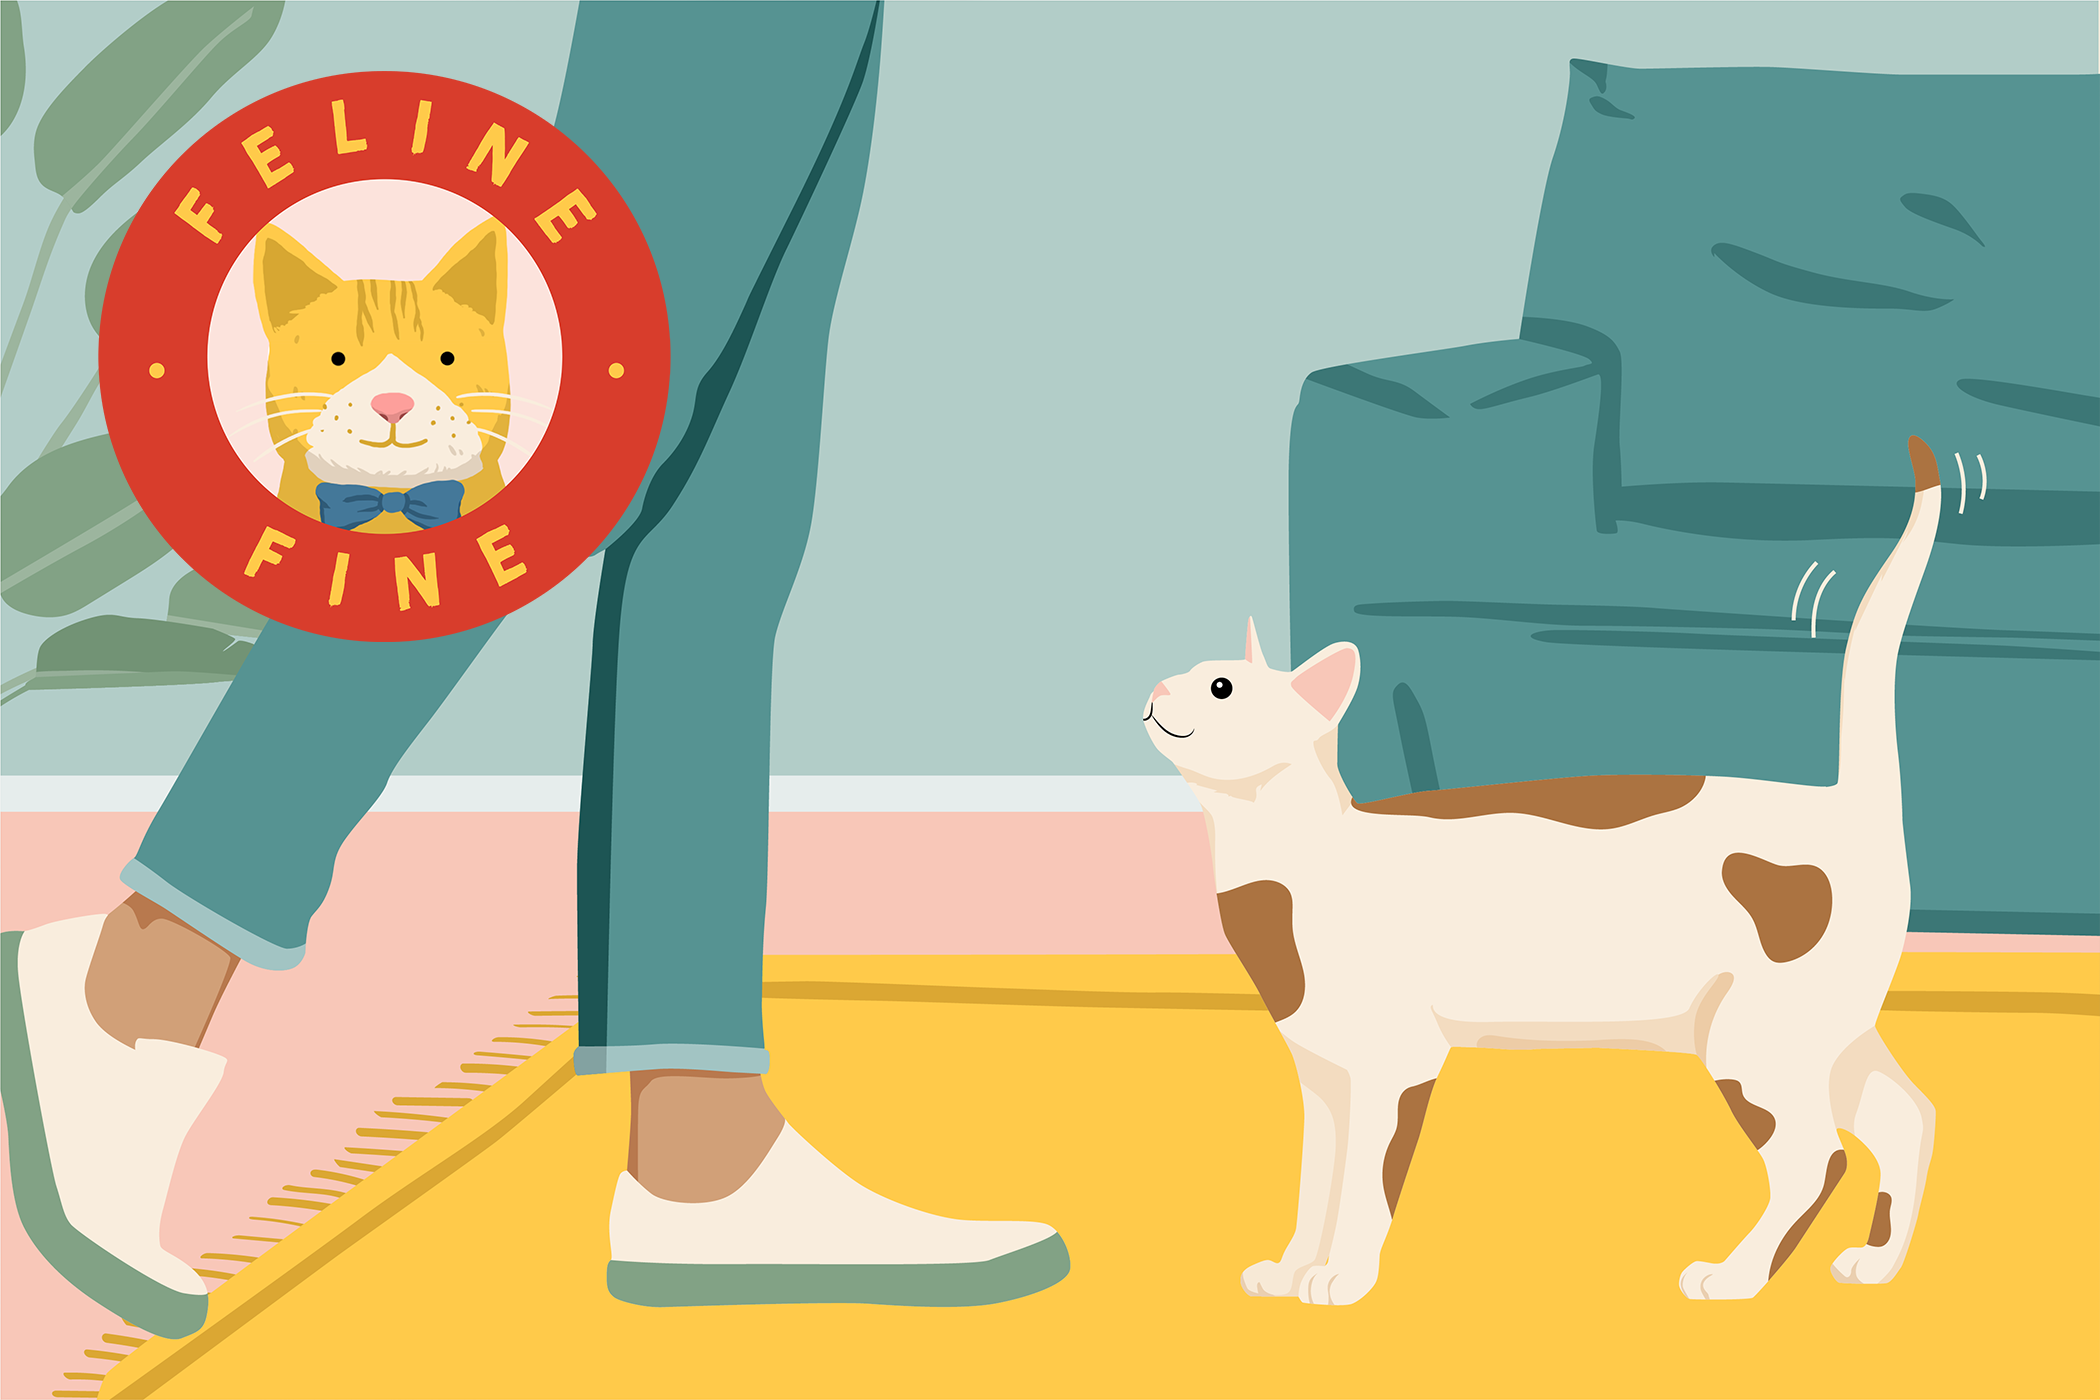 cat happily wagging his tail at his human with Feline Fine logo